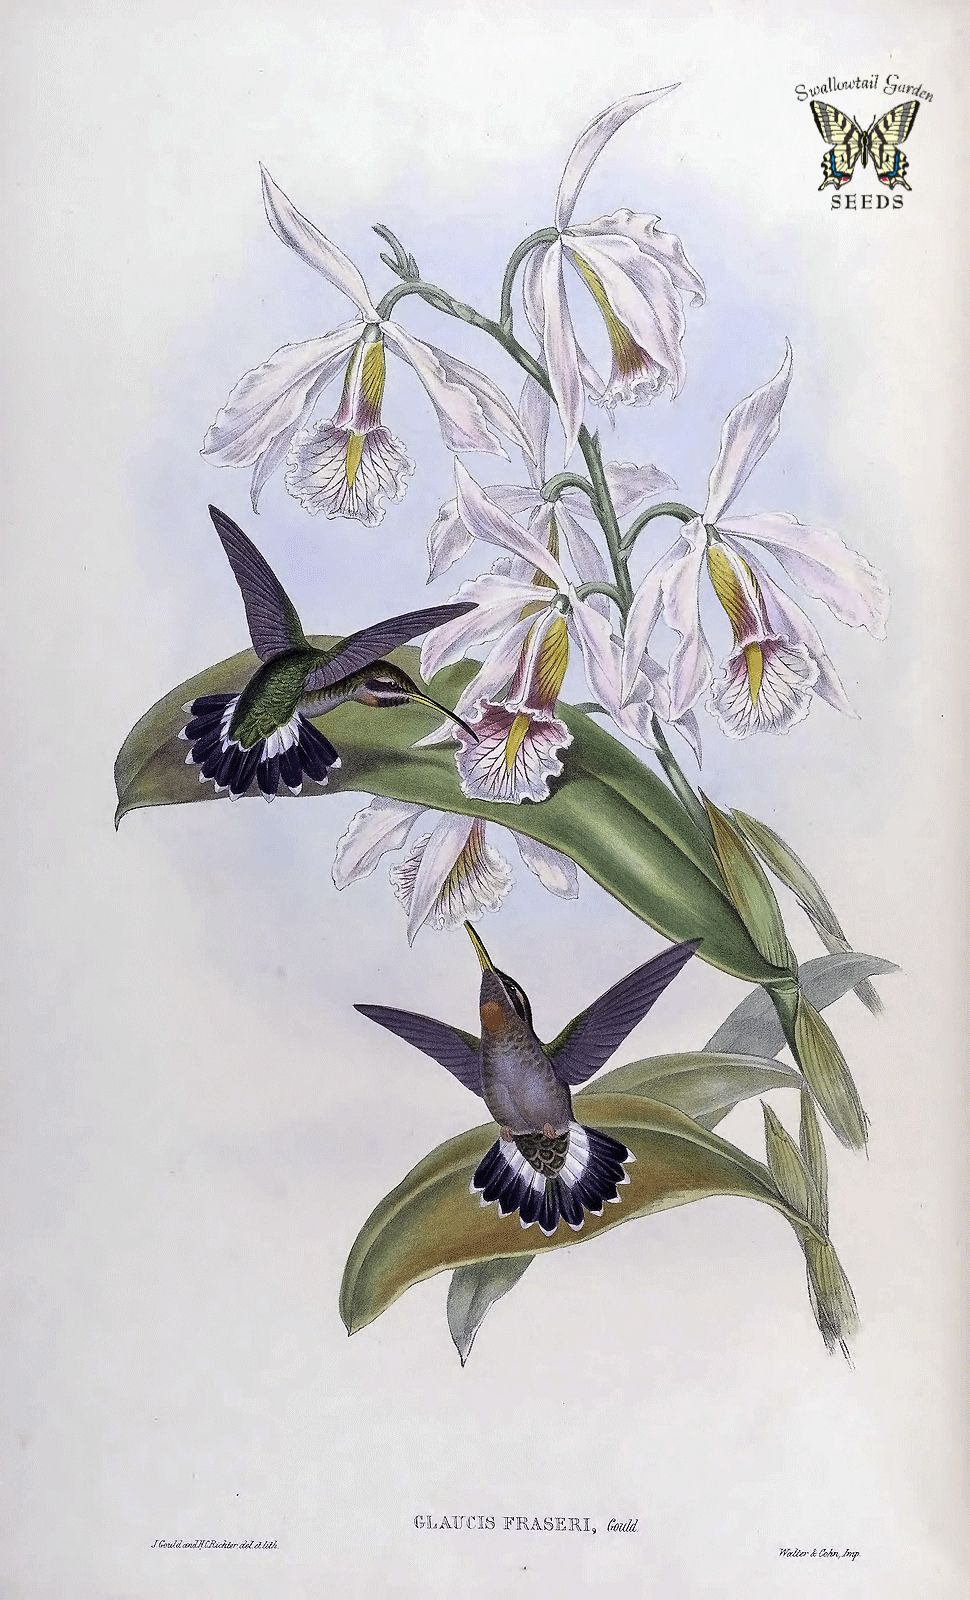 Peekaboo Orchid Cattleya Maxima Largest Cattleya Purple Lavender Flowers With Unique Yellow Stripe On Lips Bloom November And December Flower Illustration Orchid Illustration Hummingbird Art